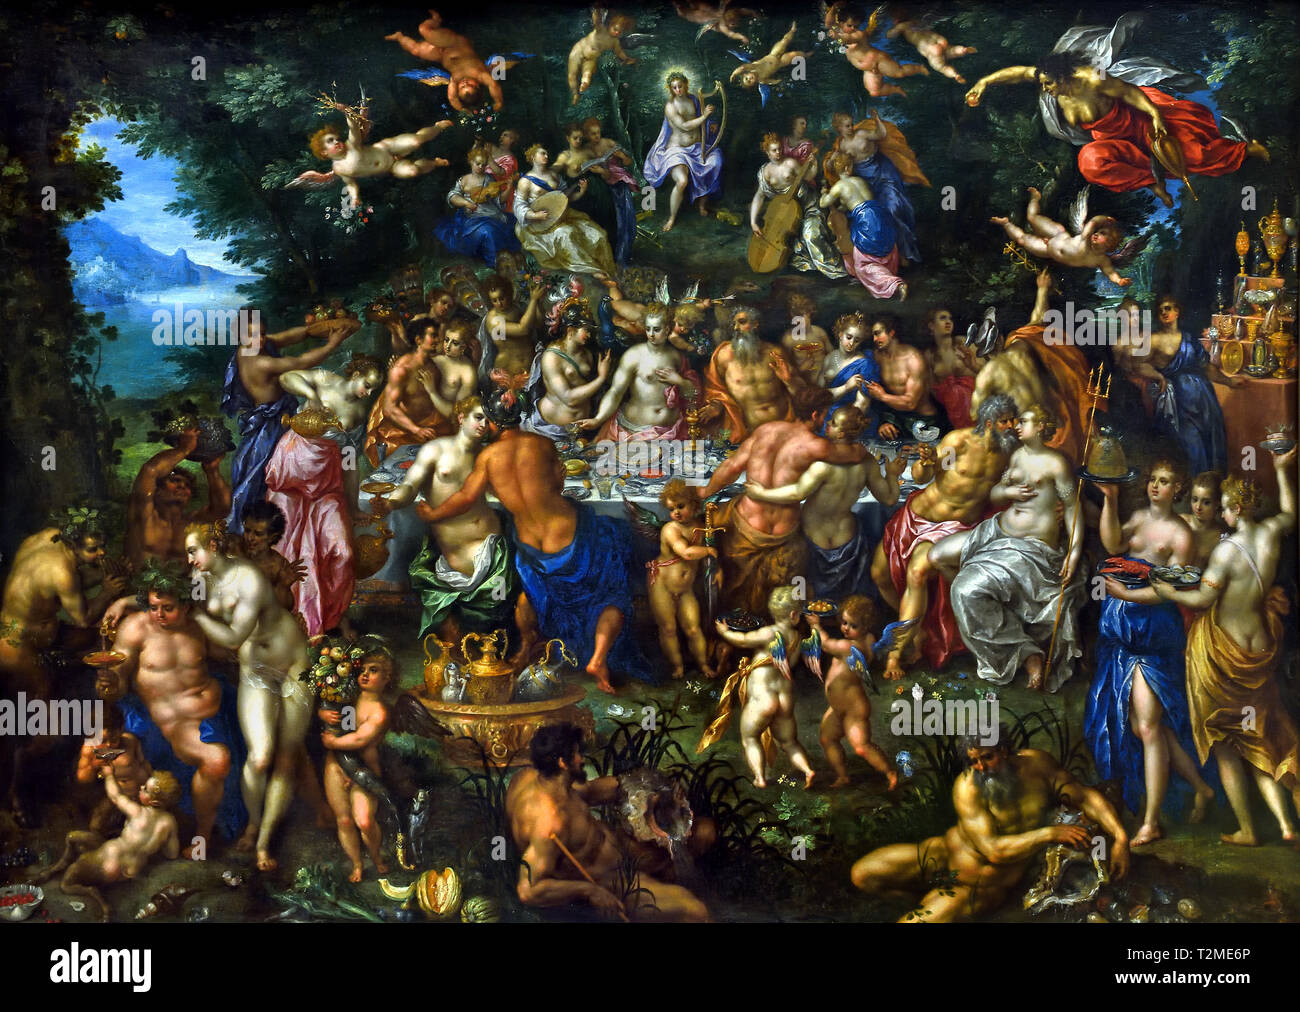 The Nuptials of Thetis and Peleus or The Feast of the Gods ( Metamorphoses by the Latin poet Ovid 1st Century AD ) by Hendrick De Clerck 1570-1629,  Belgian, Belgium, Flemish. Stock Photo